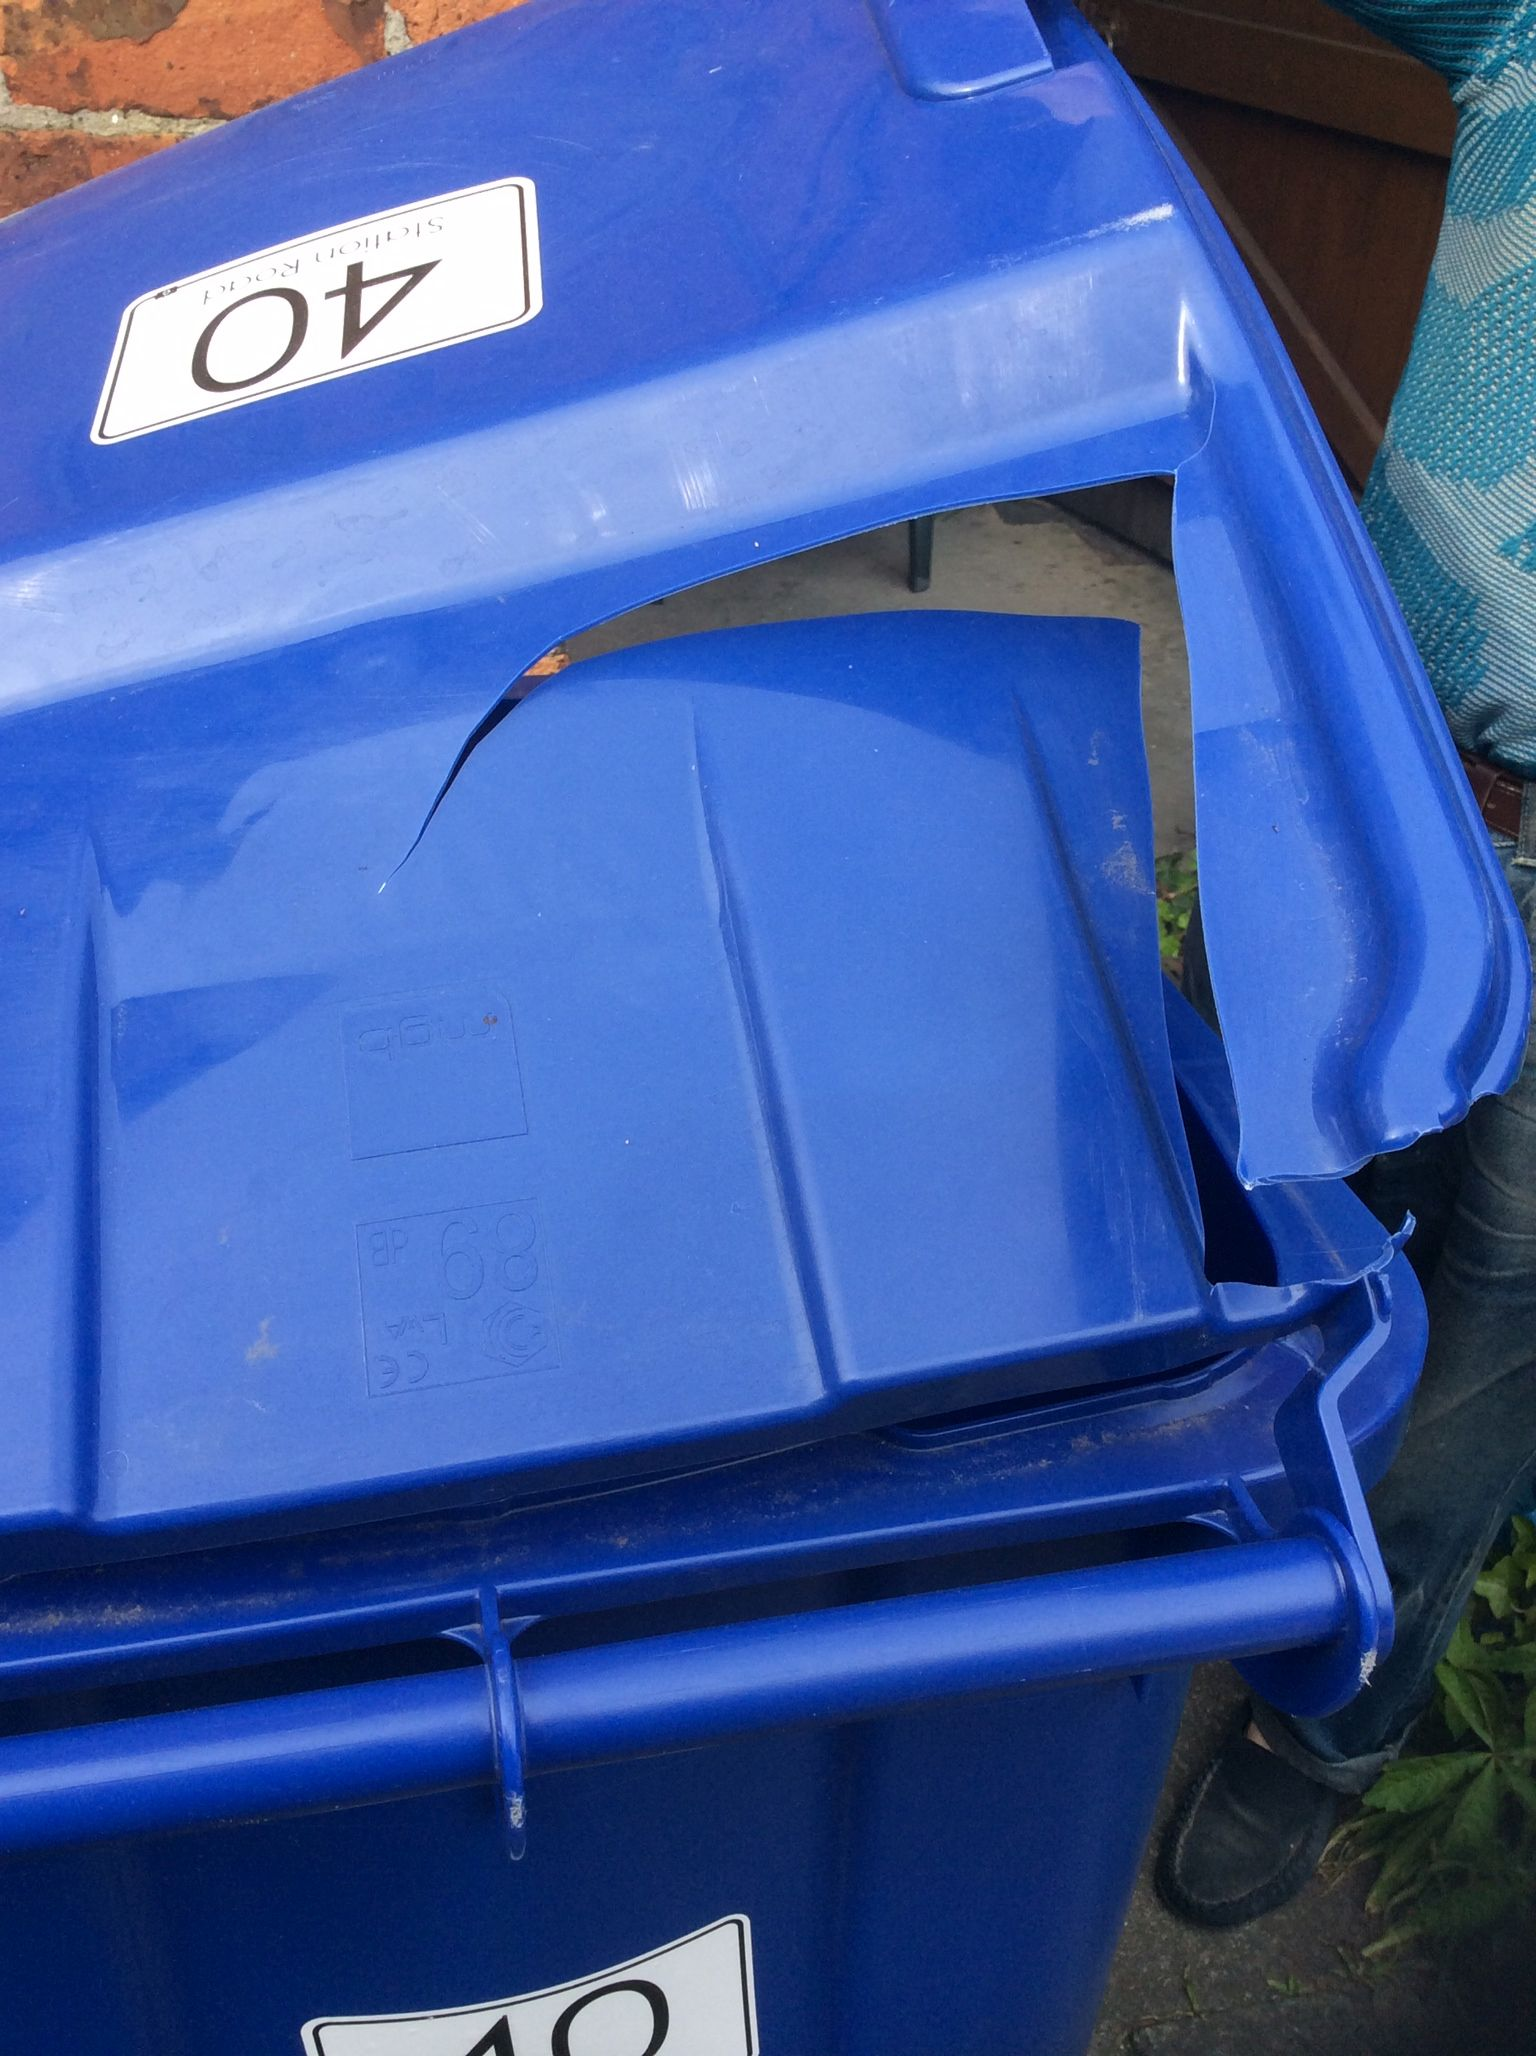 , Council Leader quizzed over Waste bin Breakages, Skem News - The Top Source for Skelmersdale News, Skem News - The Top Source for Skelmersdale News